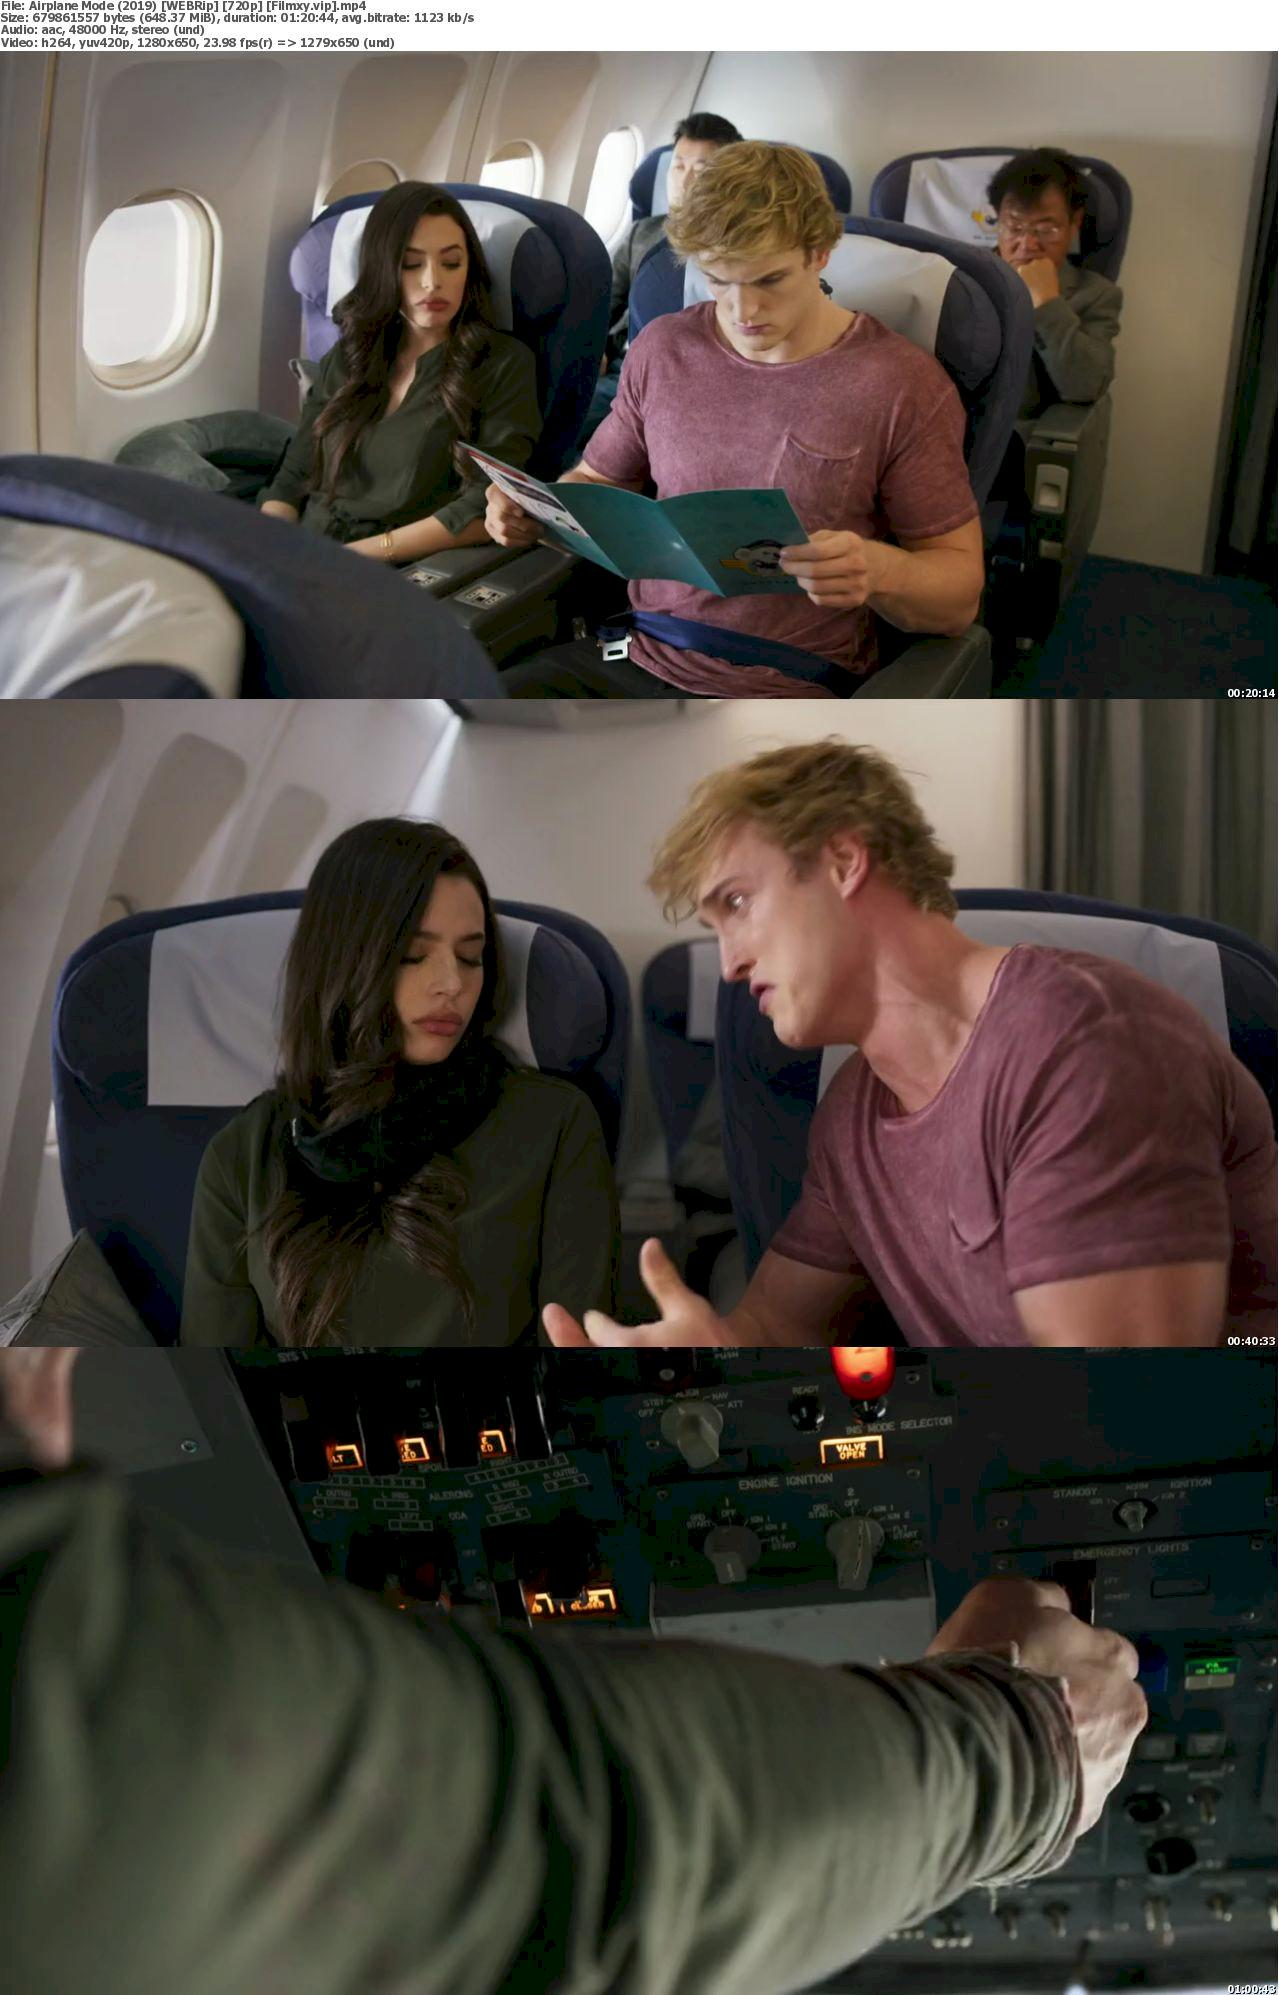 Airplane Mode (2019) [720p & 1080p] WEB-Rip Free Movie Watch Online & Download 720p Screenshot